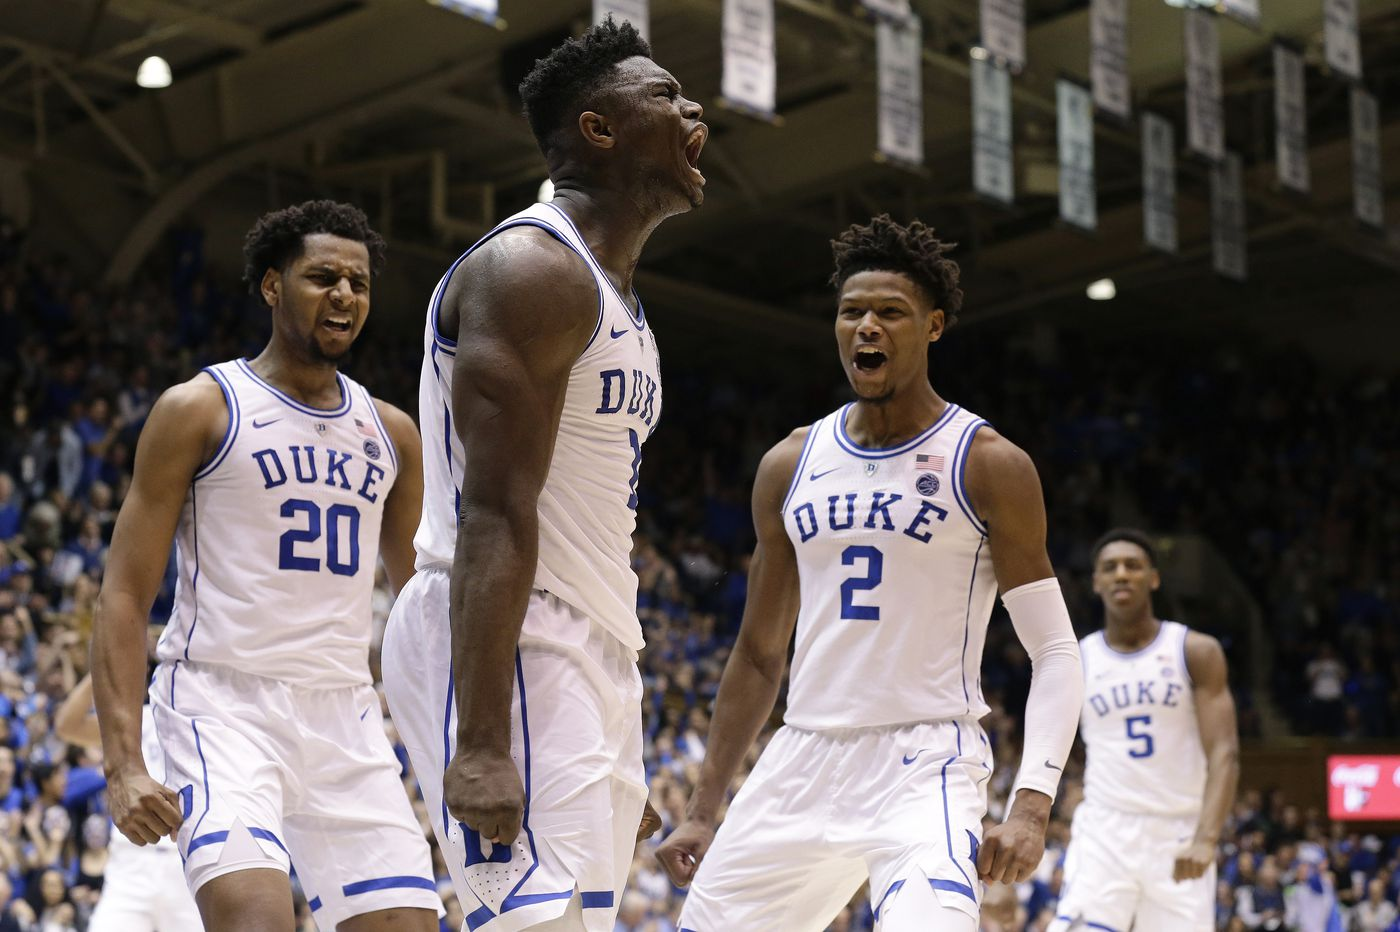 Westtown grad Cam Reddish a big part of Duke's win over Virginia | Mike Jensen